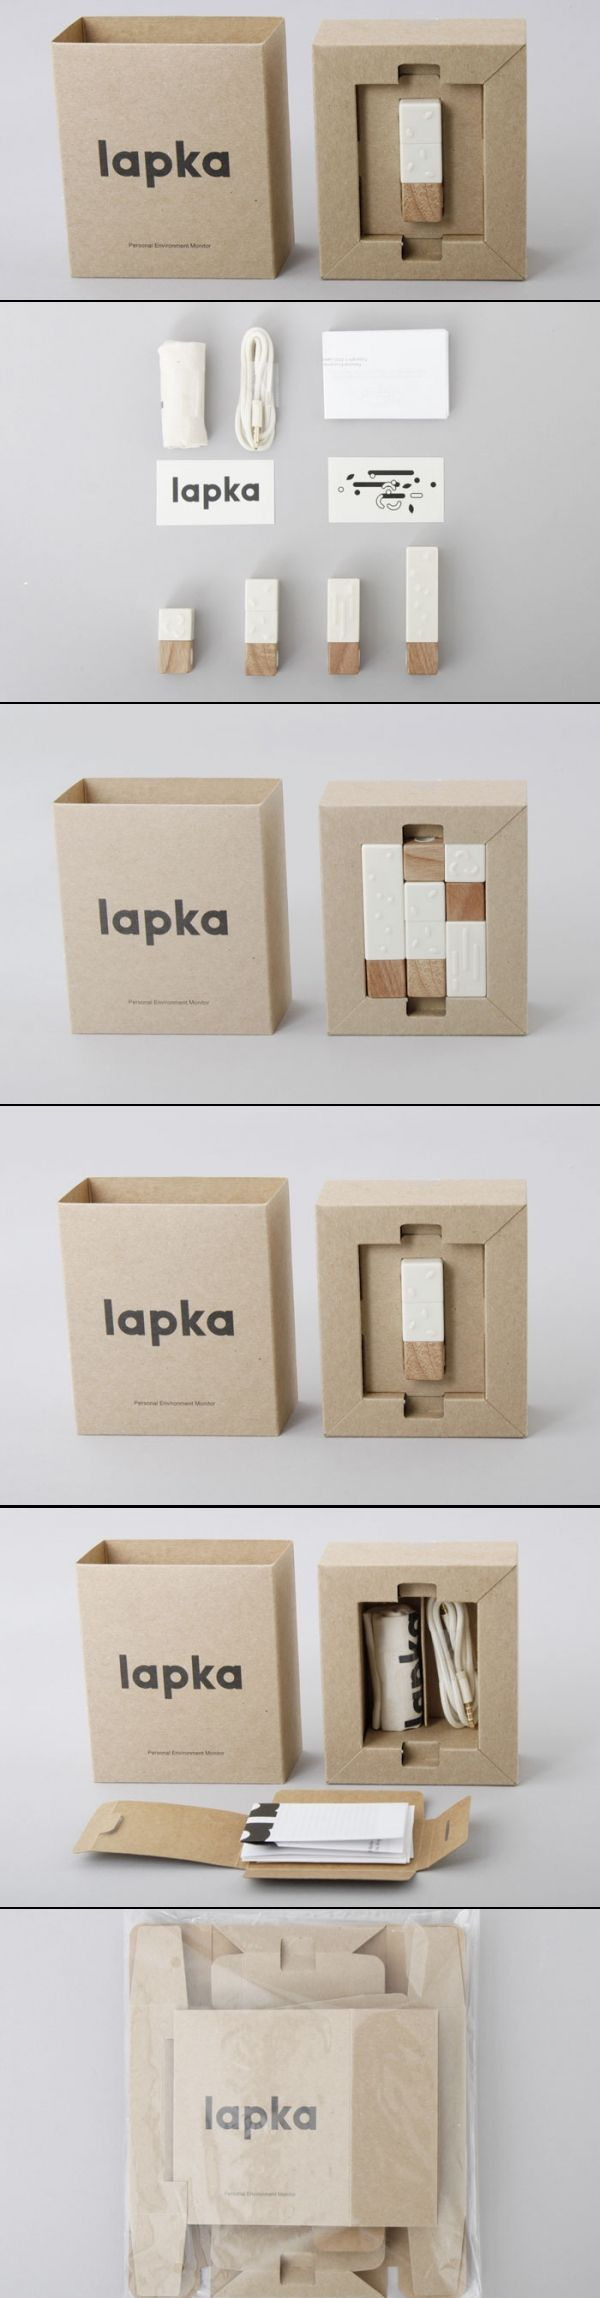 Lapka. Lapka is a collection of small sensors that attach to your iPhone through the headphone jack. They allow you to take measurements and assess the quality and healthiness of your surrounding environment. After the pack has been opened and the hero product removed users are invited on a voyage of discovery through the packaging as they dig down to unearth peripherals and printed literature. This again stems from the science of discovery encapsulated within the product.